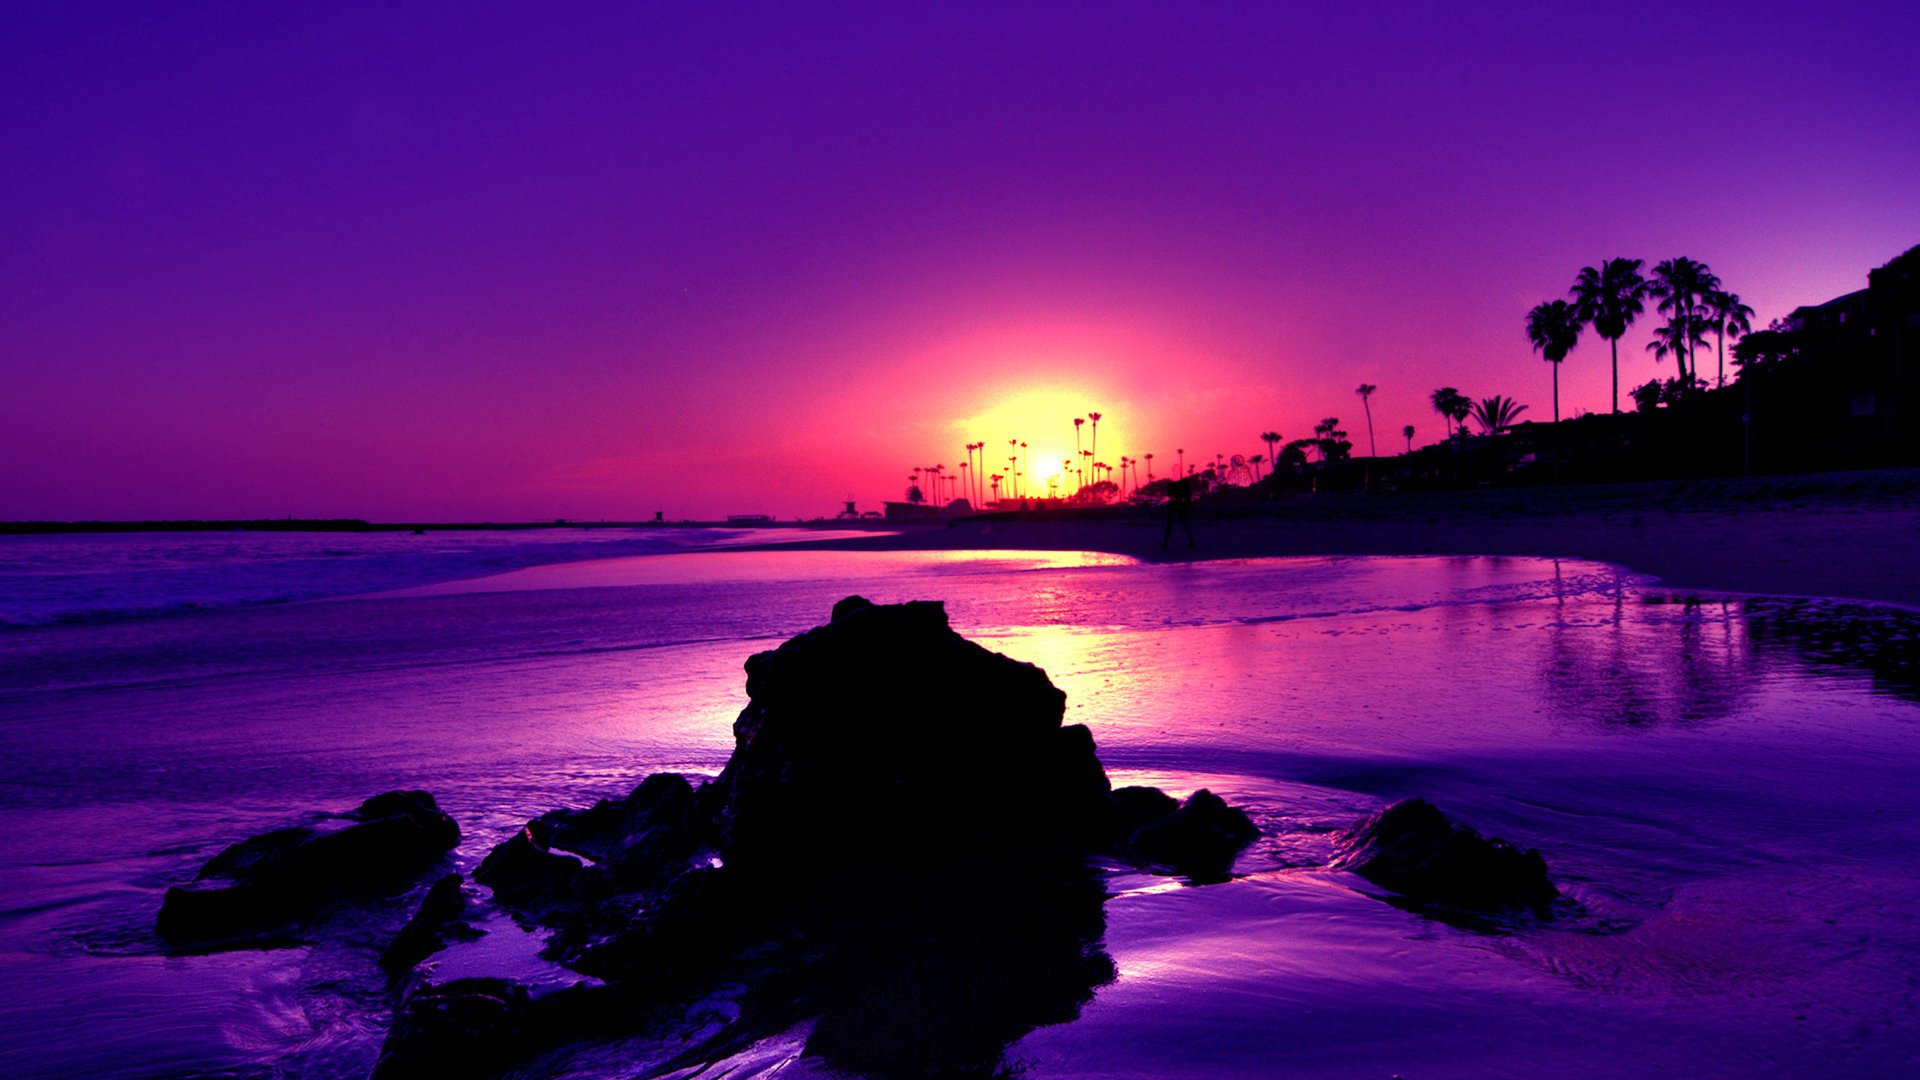 Gorgeous Purple Sunset Hd Wallpaper